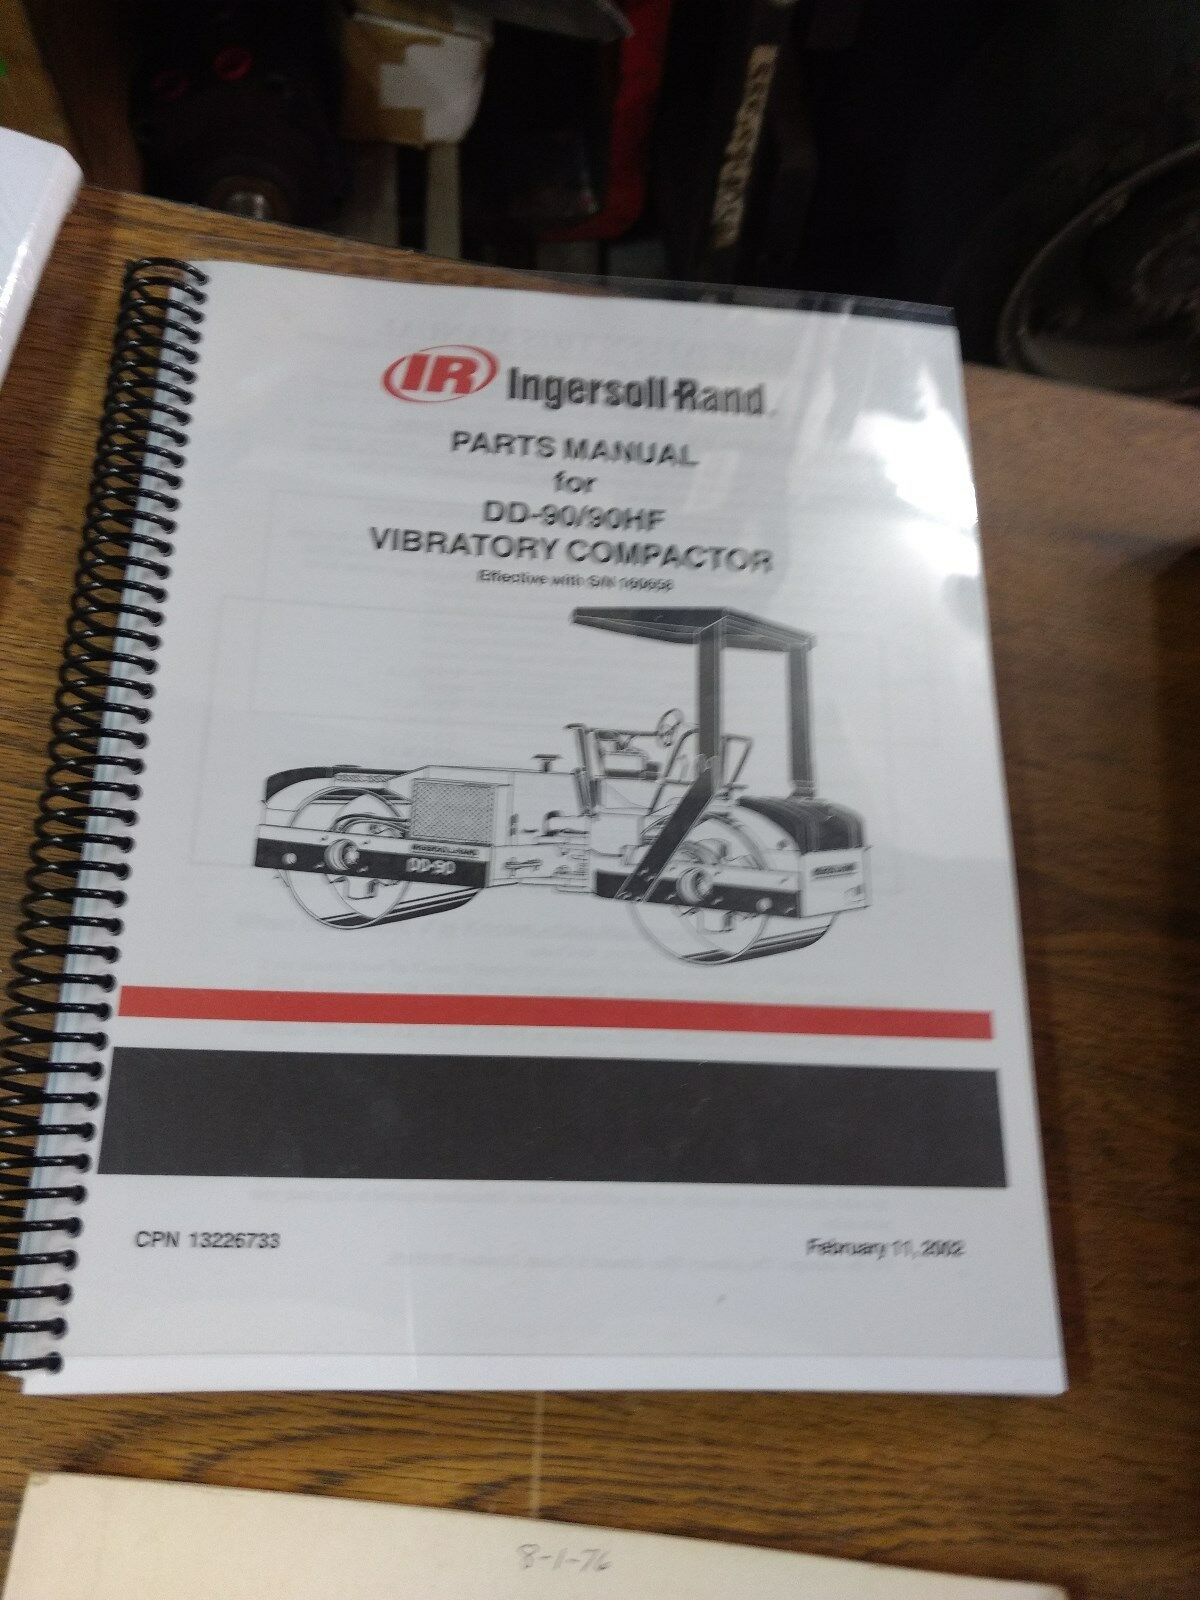 Ingersoll Rand DD-90 90HF Vibratory Compactor Parts Manual 1 of 1FREE  Shipping ...